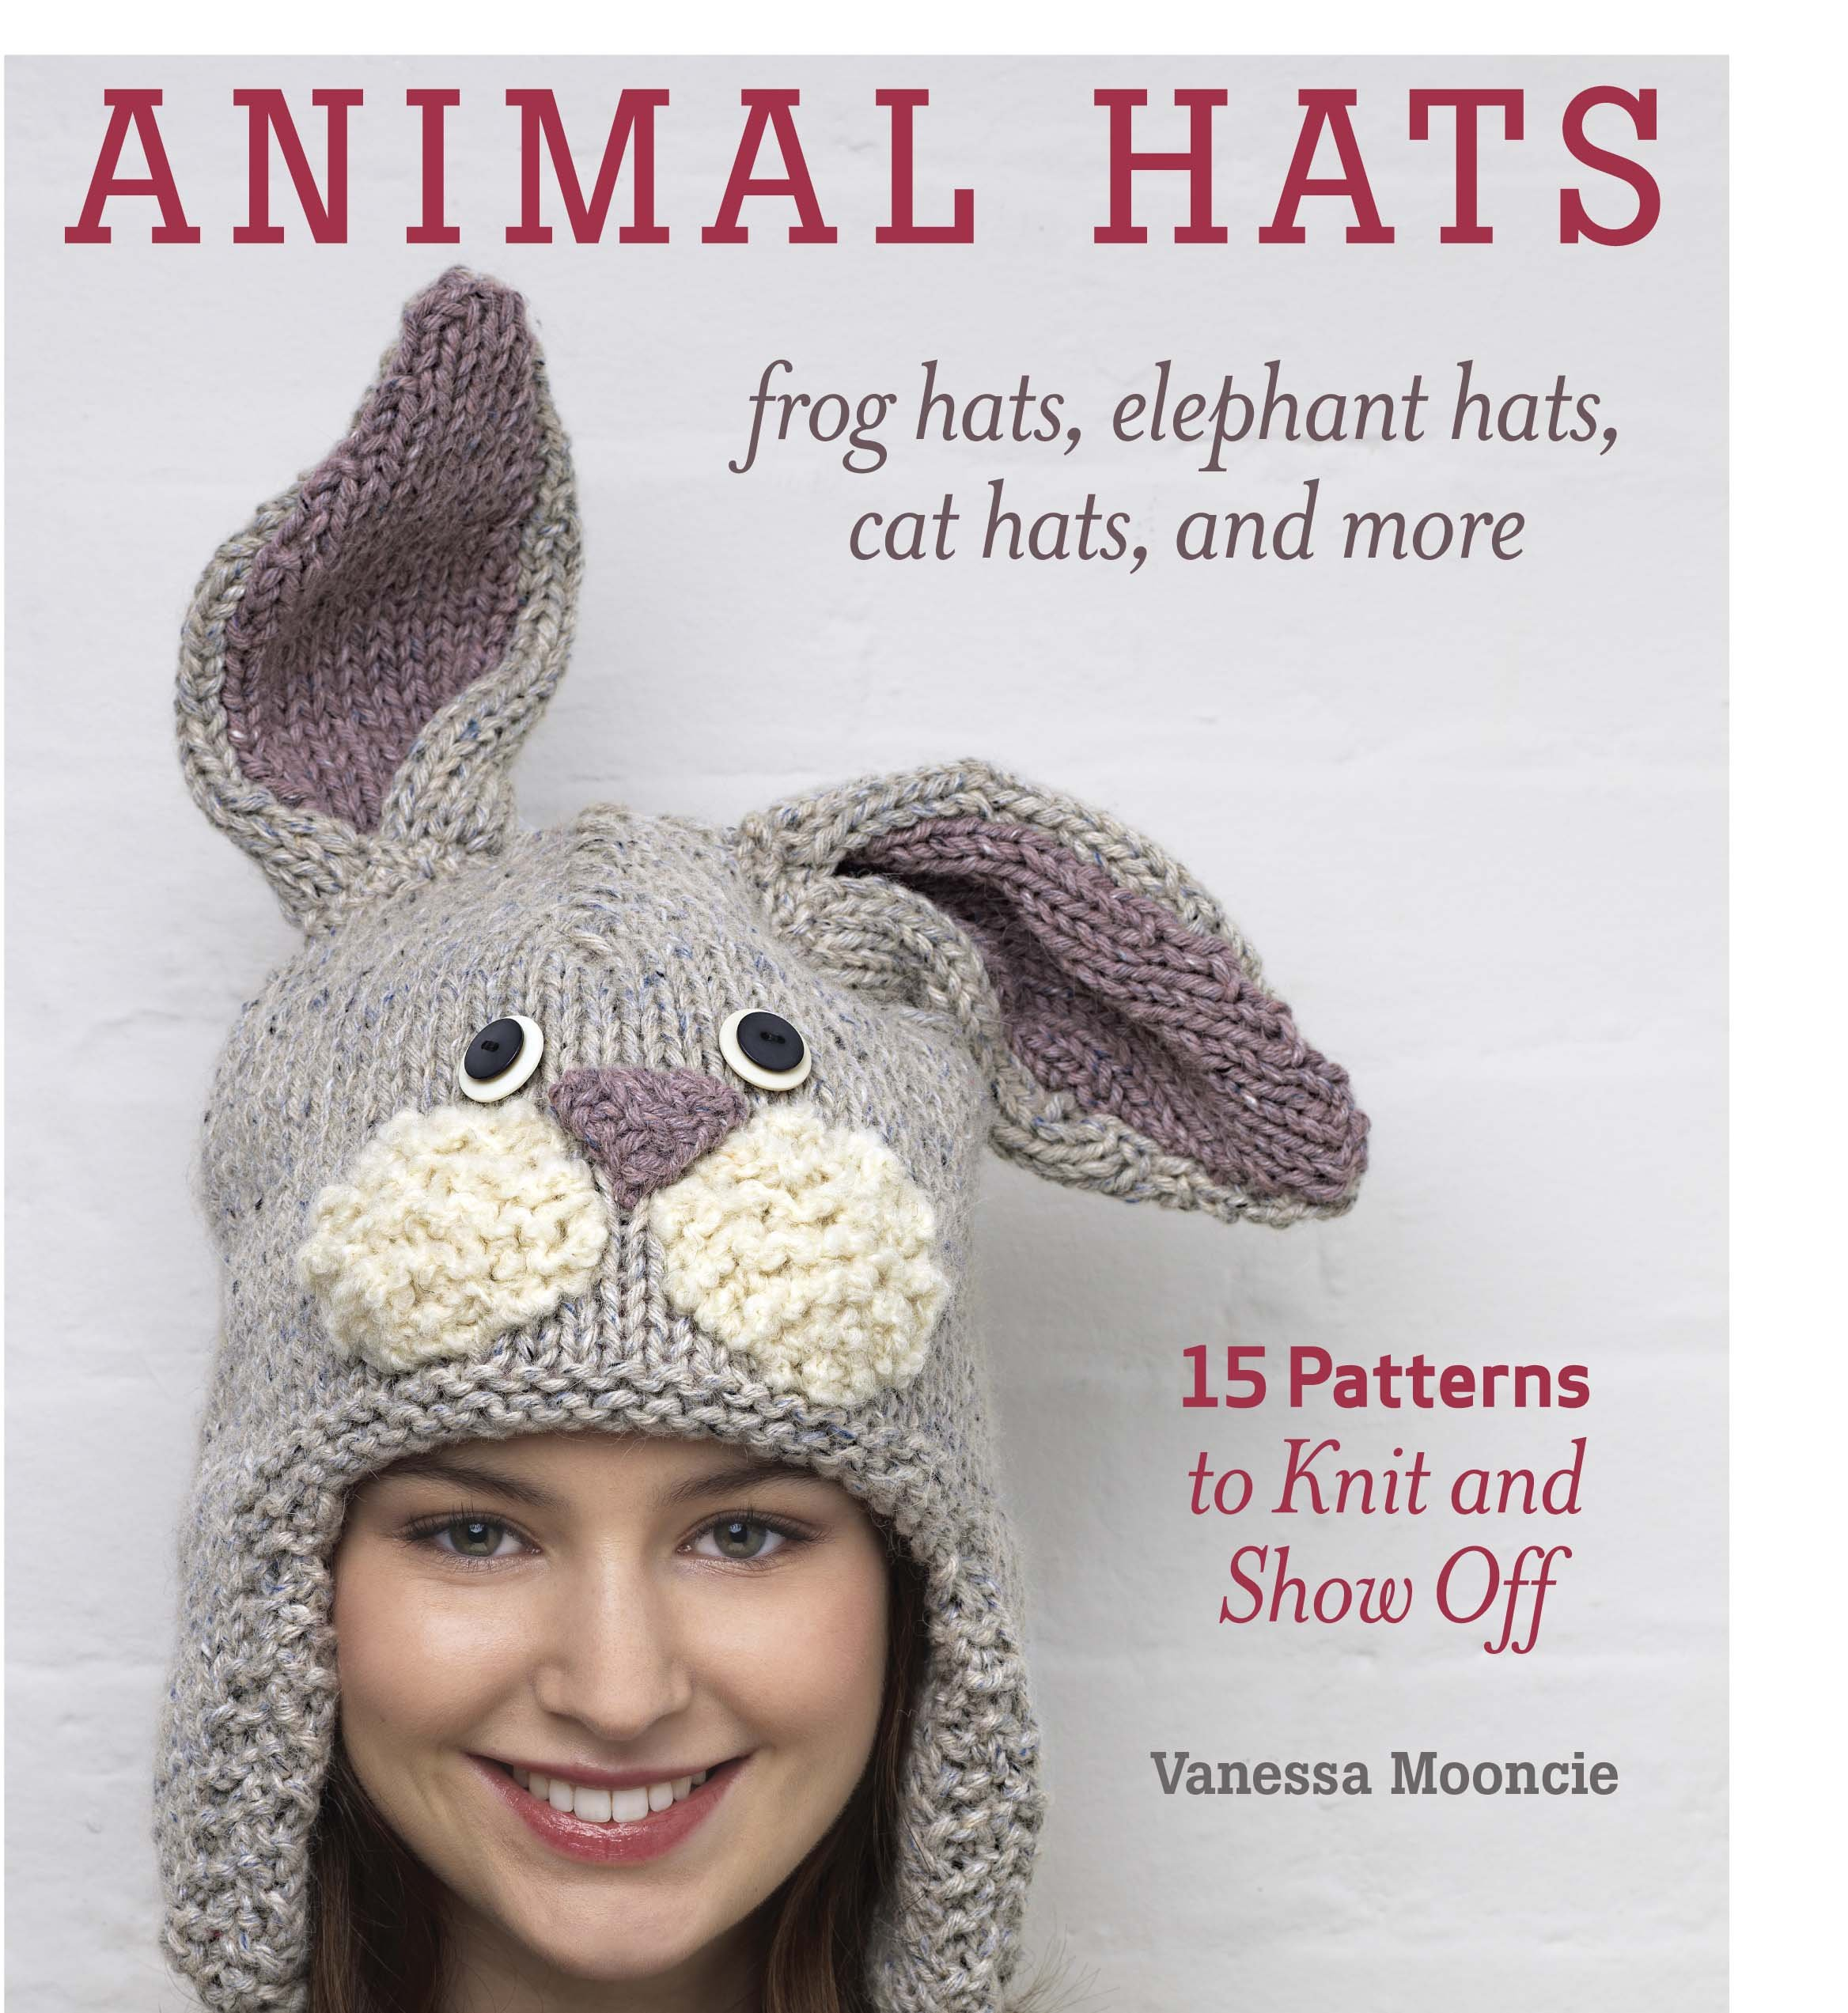 Animal Hats: 15 patterns to knit and show off Paperback – January 3, 2013 Vanessa Mooncie Taunton Press 1600859542 TA-59540